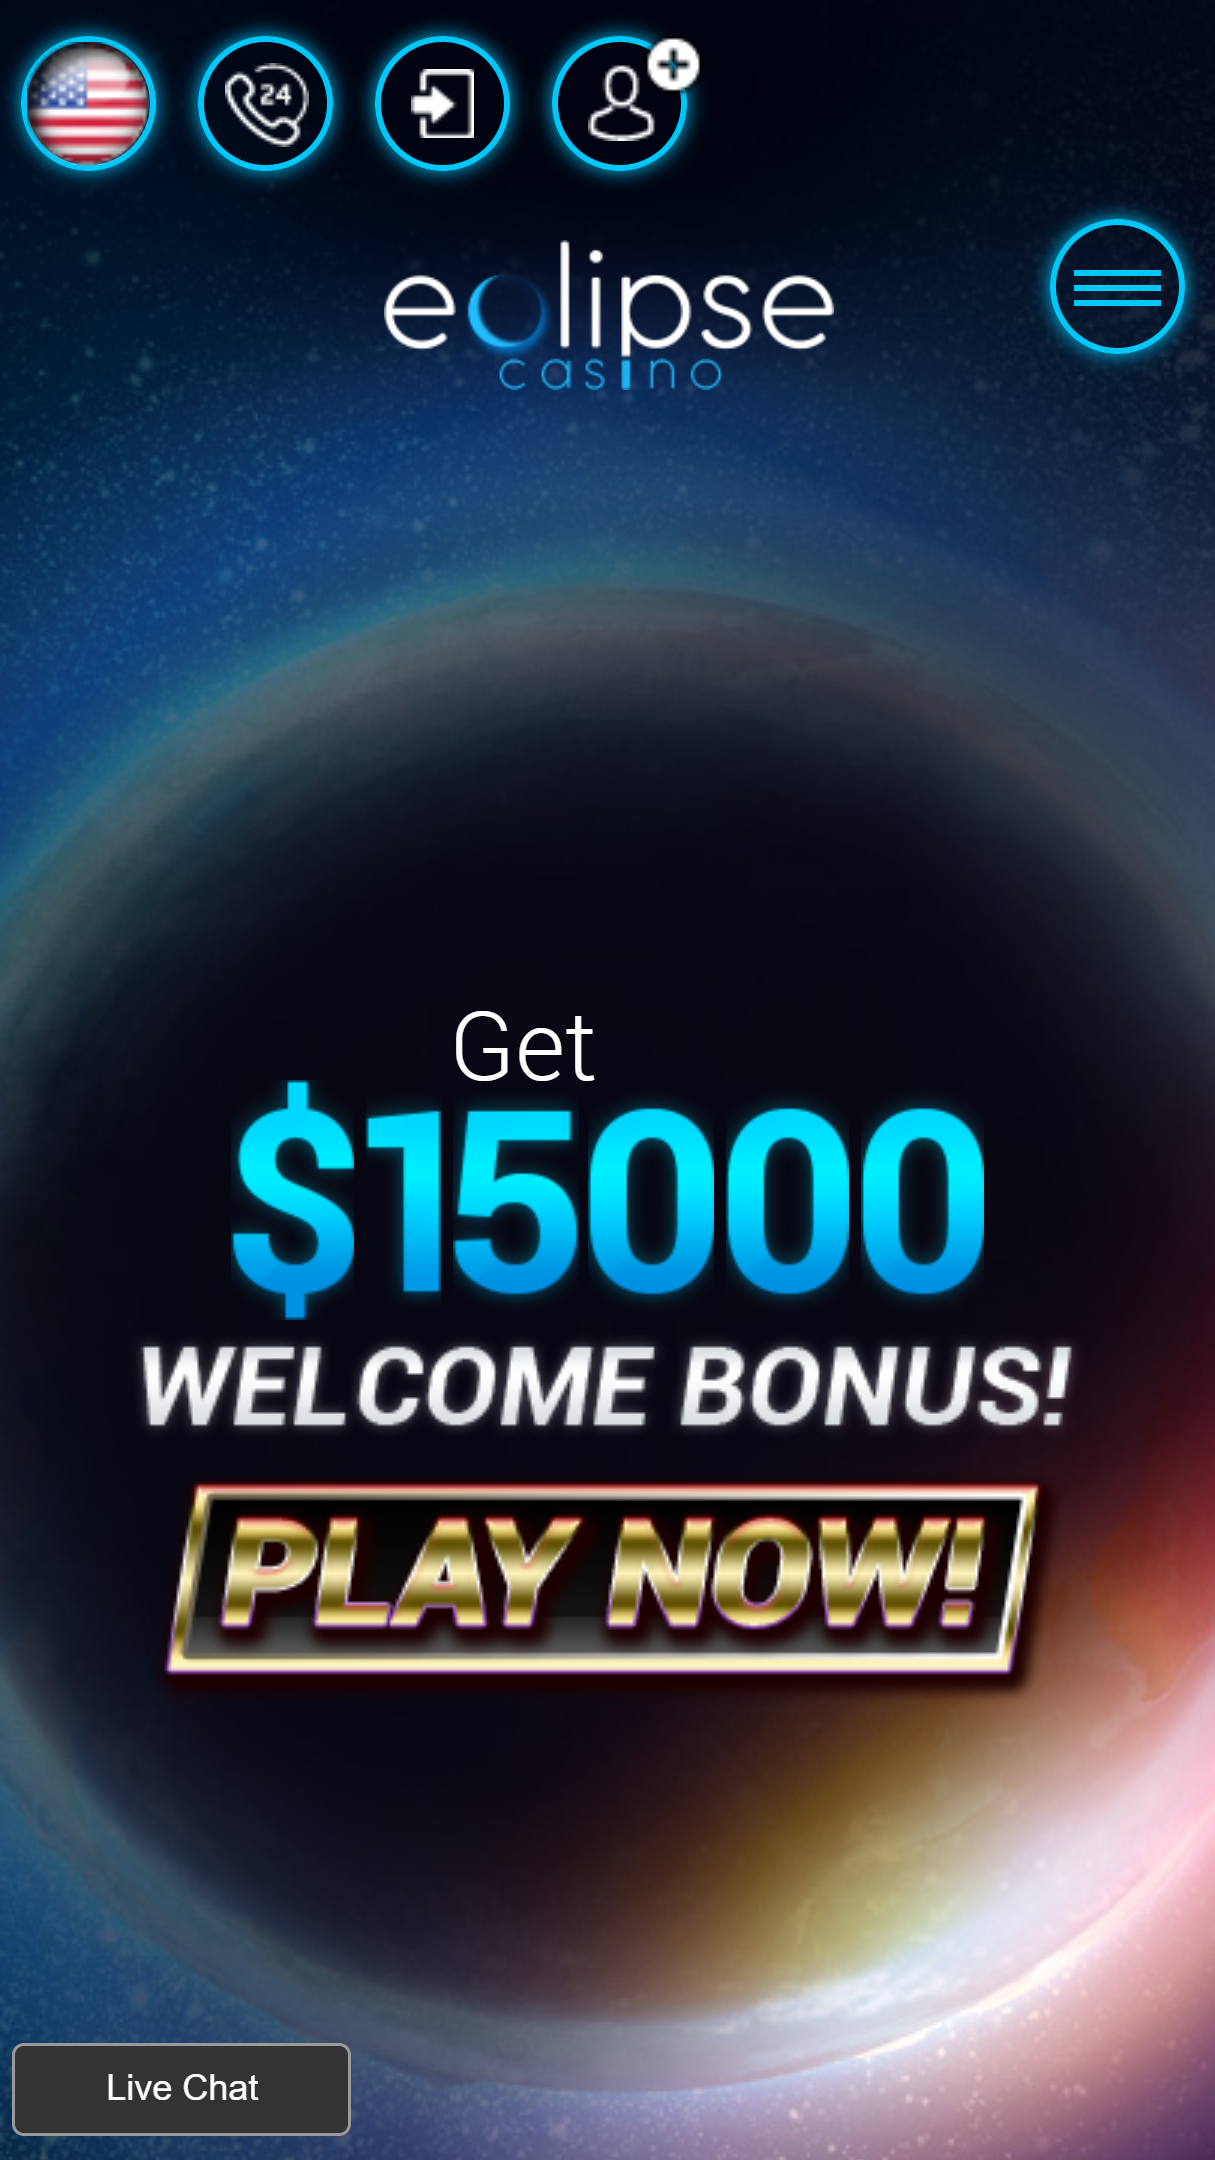 Eclipse Casino App Homepage